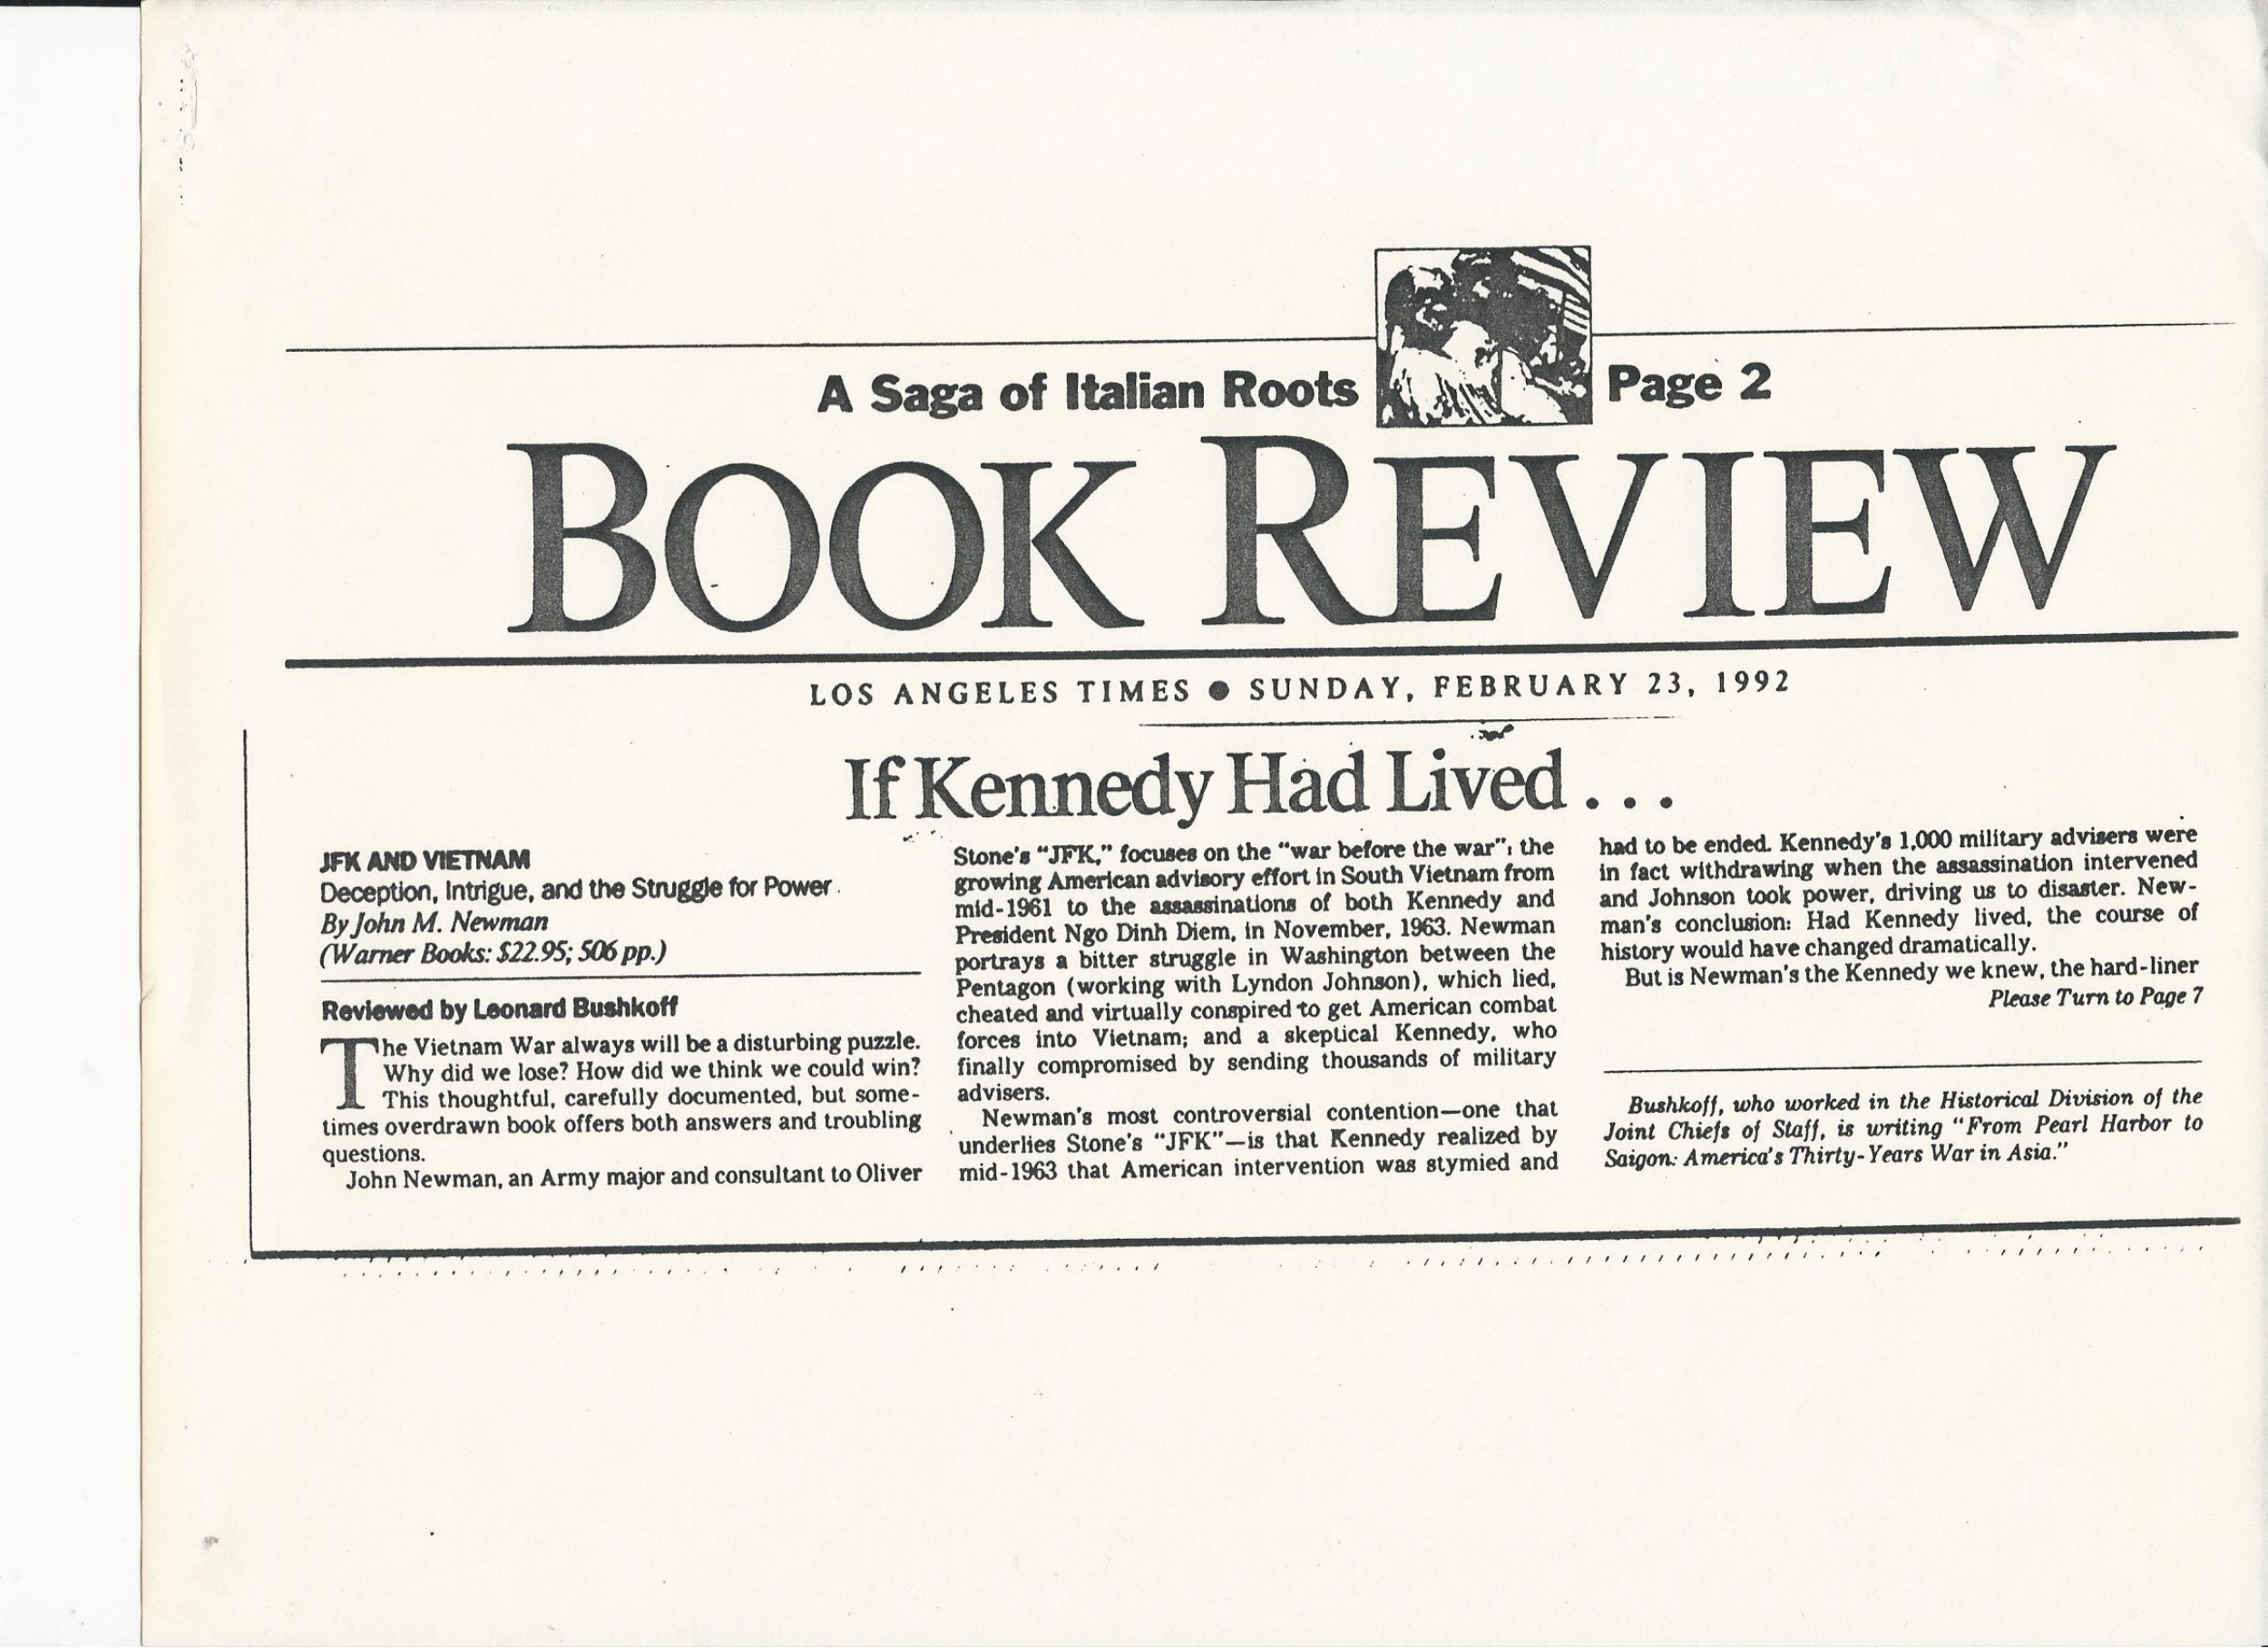 22392LATIMESBUSHKOFFP1 2/23/92 LA Times Review